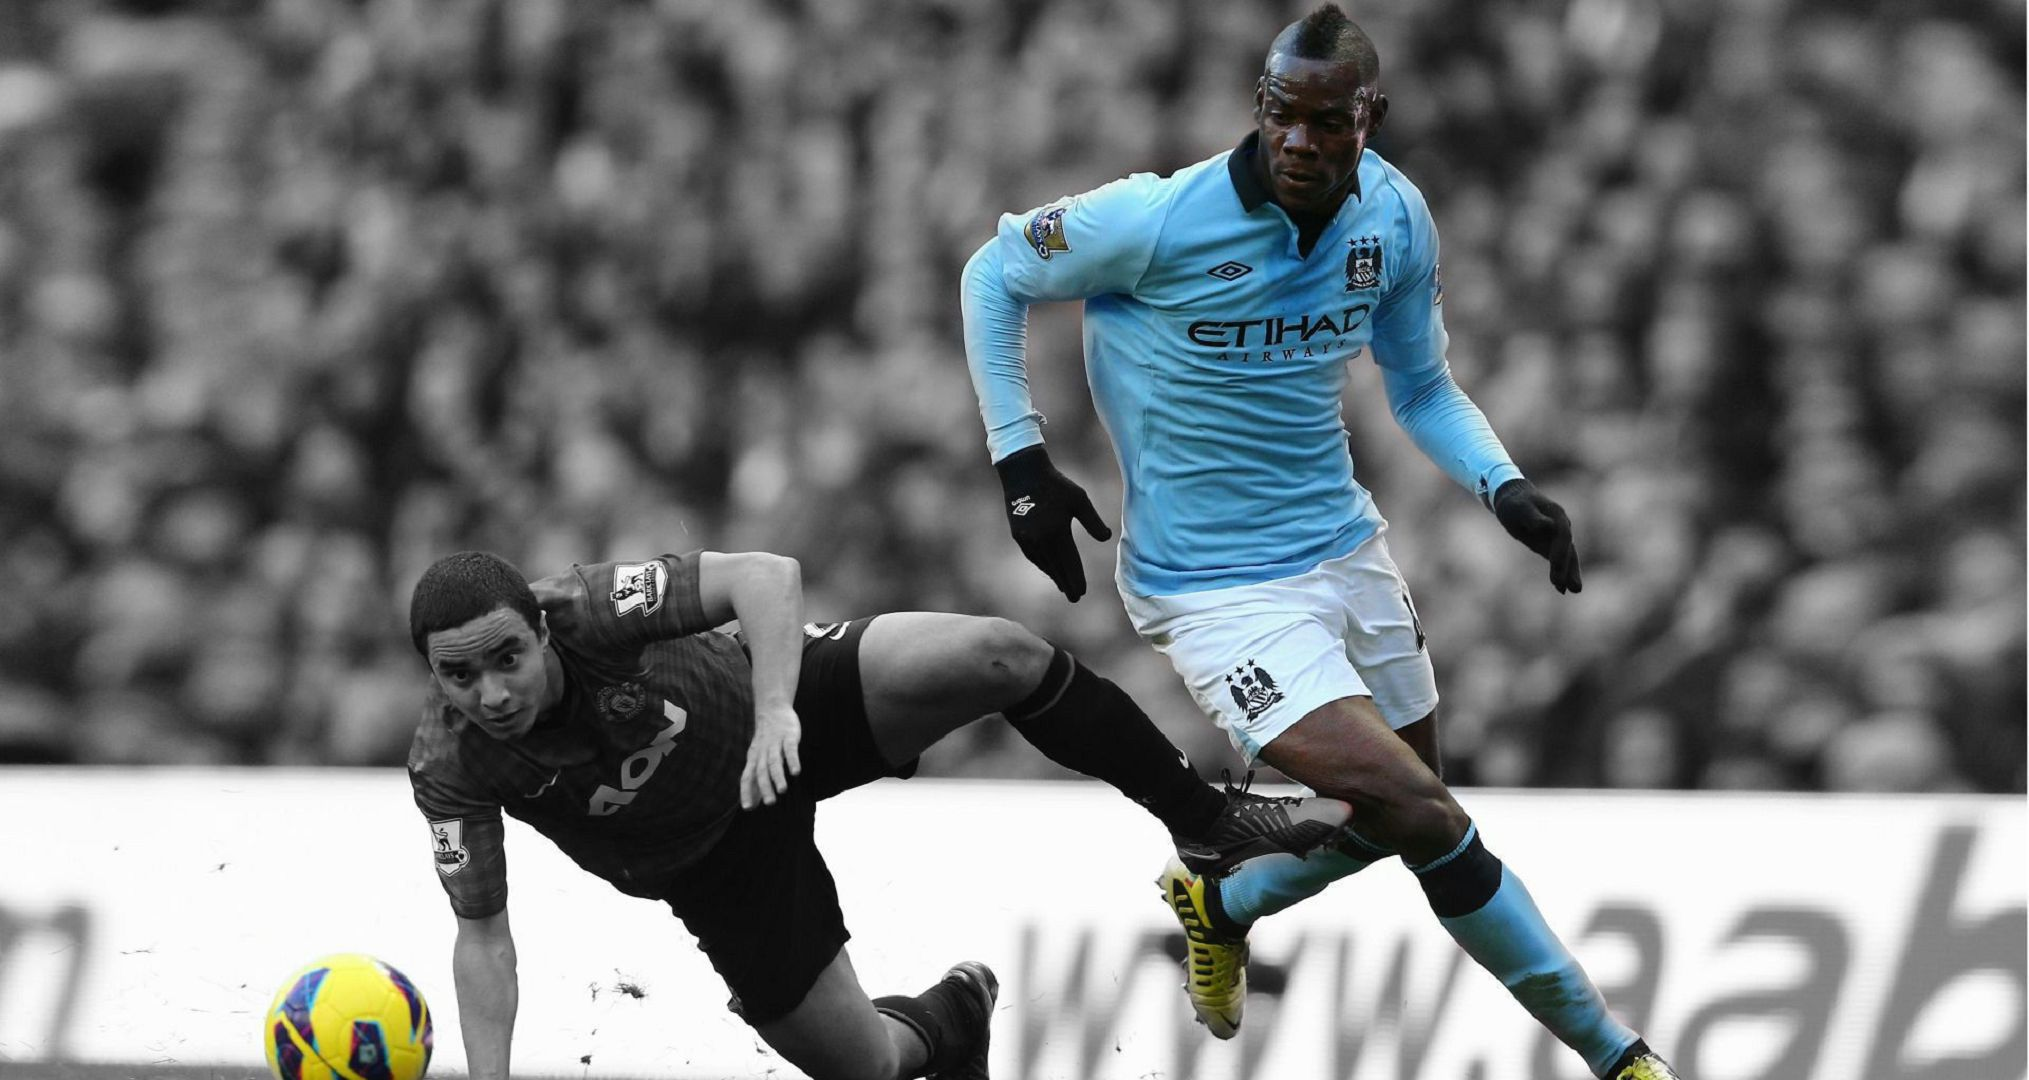 Balotelli High Quality Wallpapers